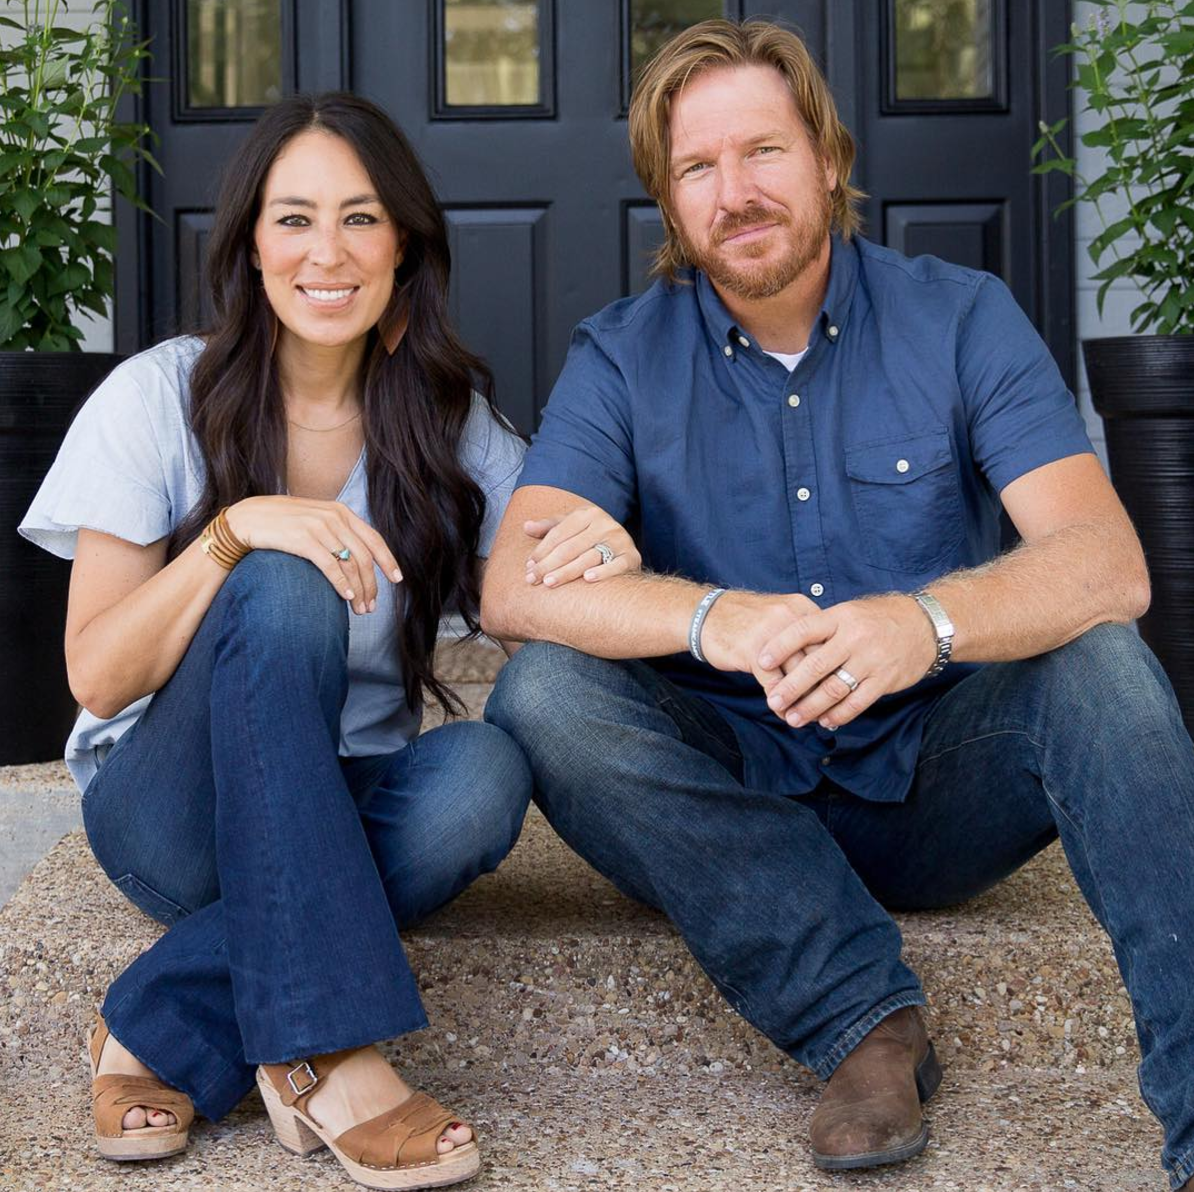 Joanna Gaines Will Star in a New HGTV Show After Fixer Upper Ends Next Month